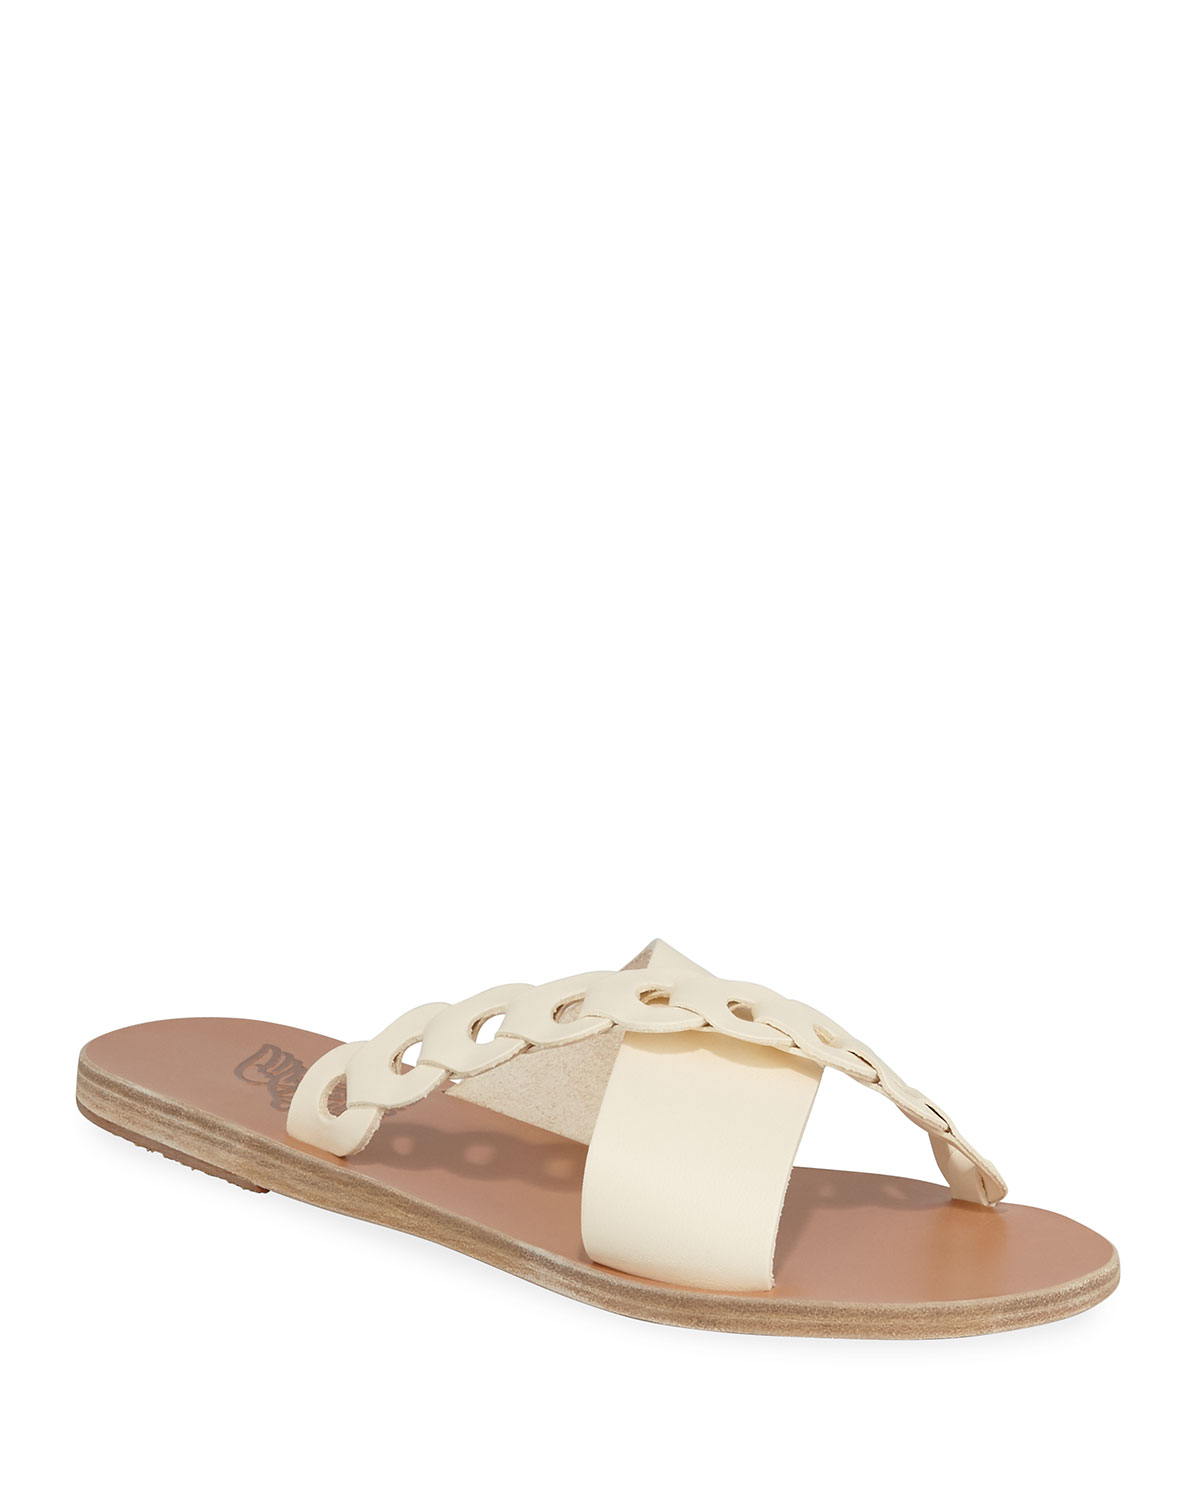 f2e44877a9c5 Ancient Greek Sandals Thais Linked Leather Flat Sandals In Ivory ...